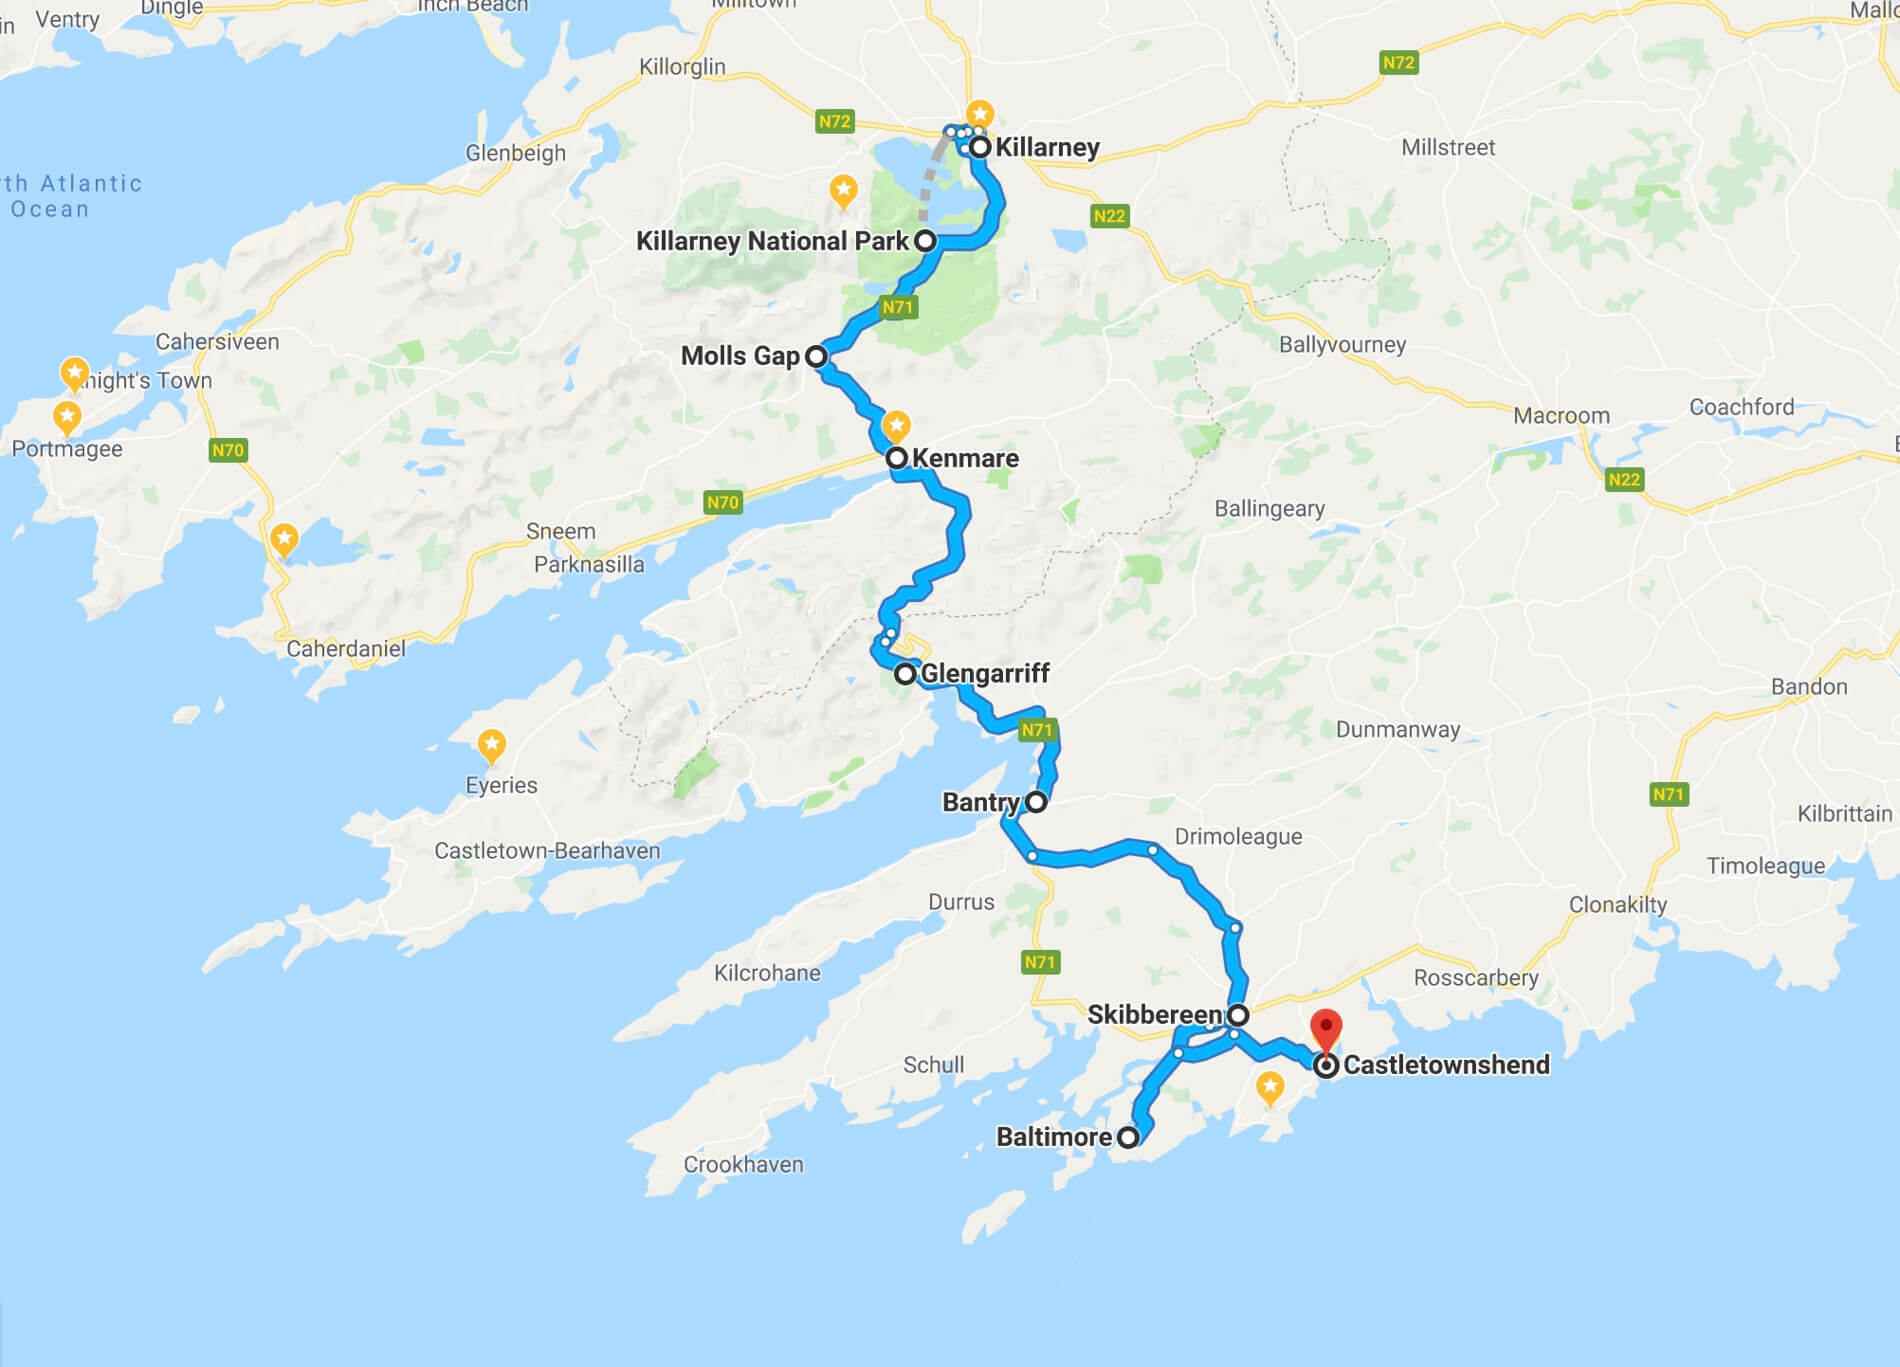 Killarney to Castletownshend Day 5